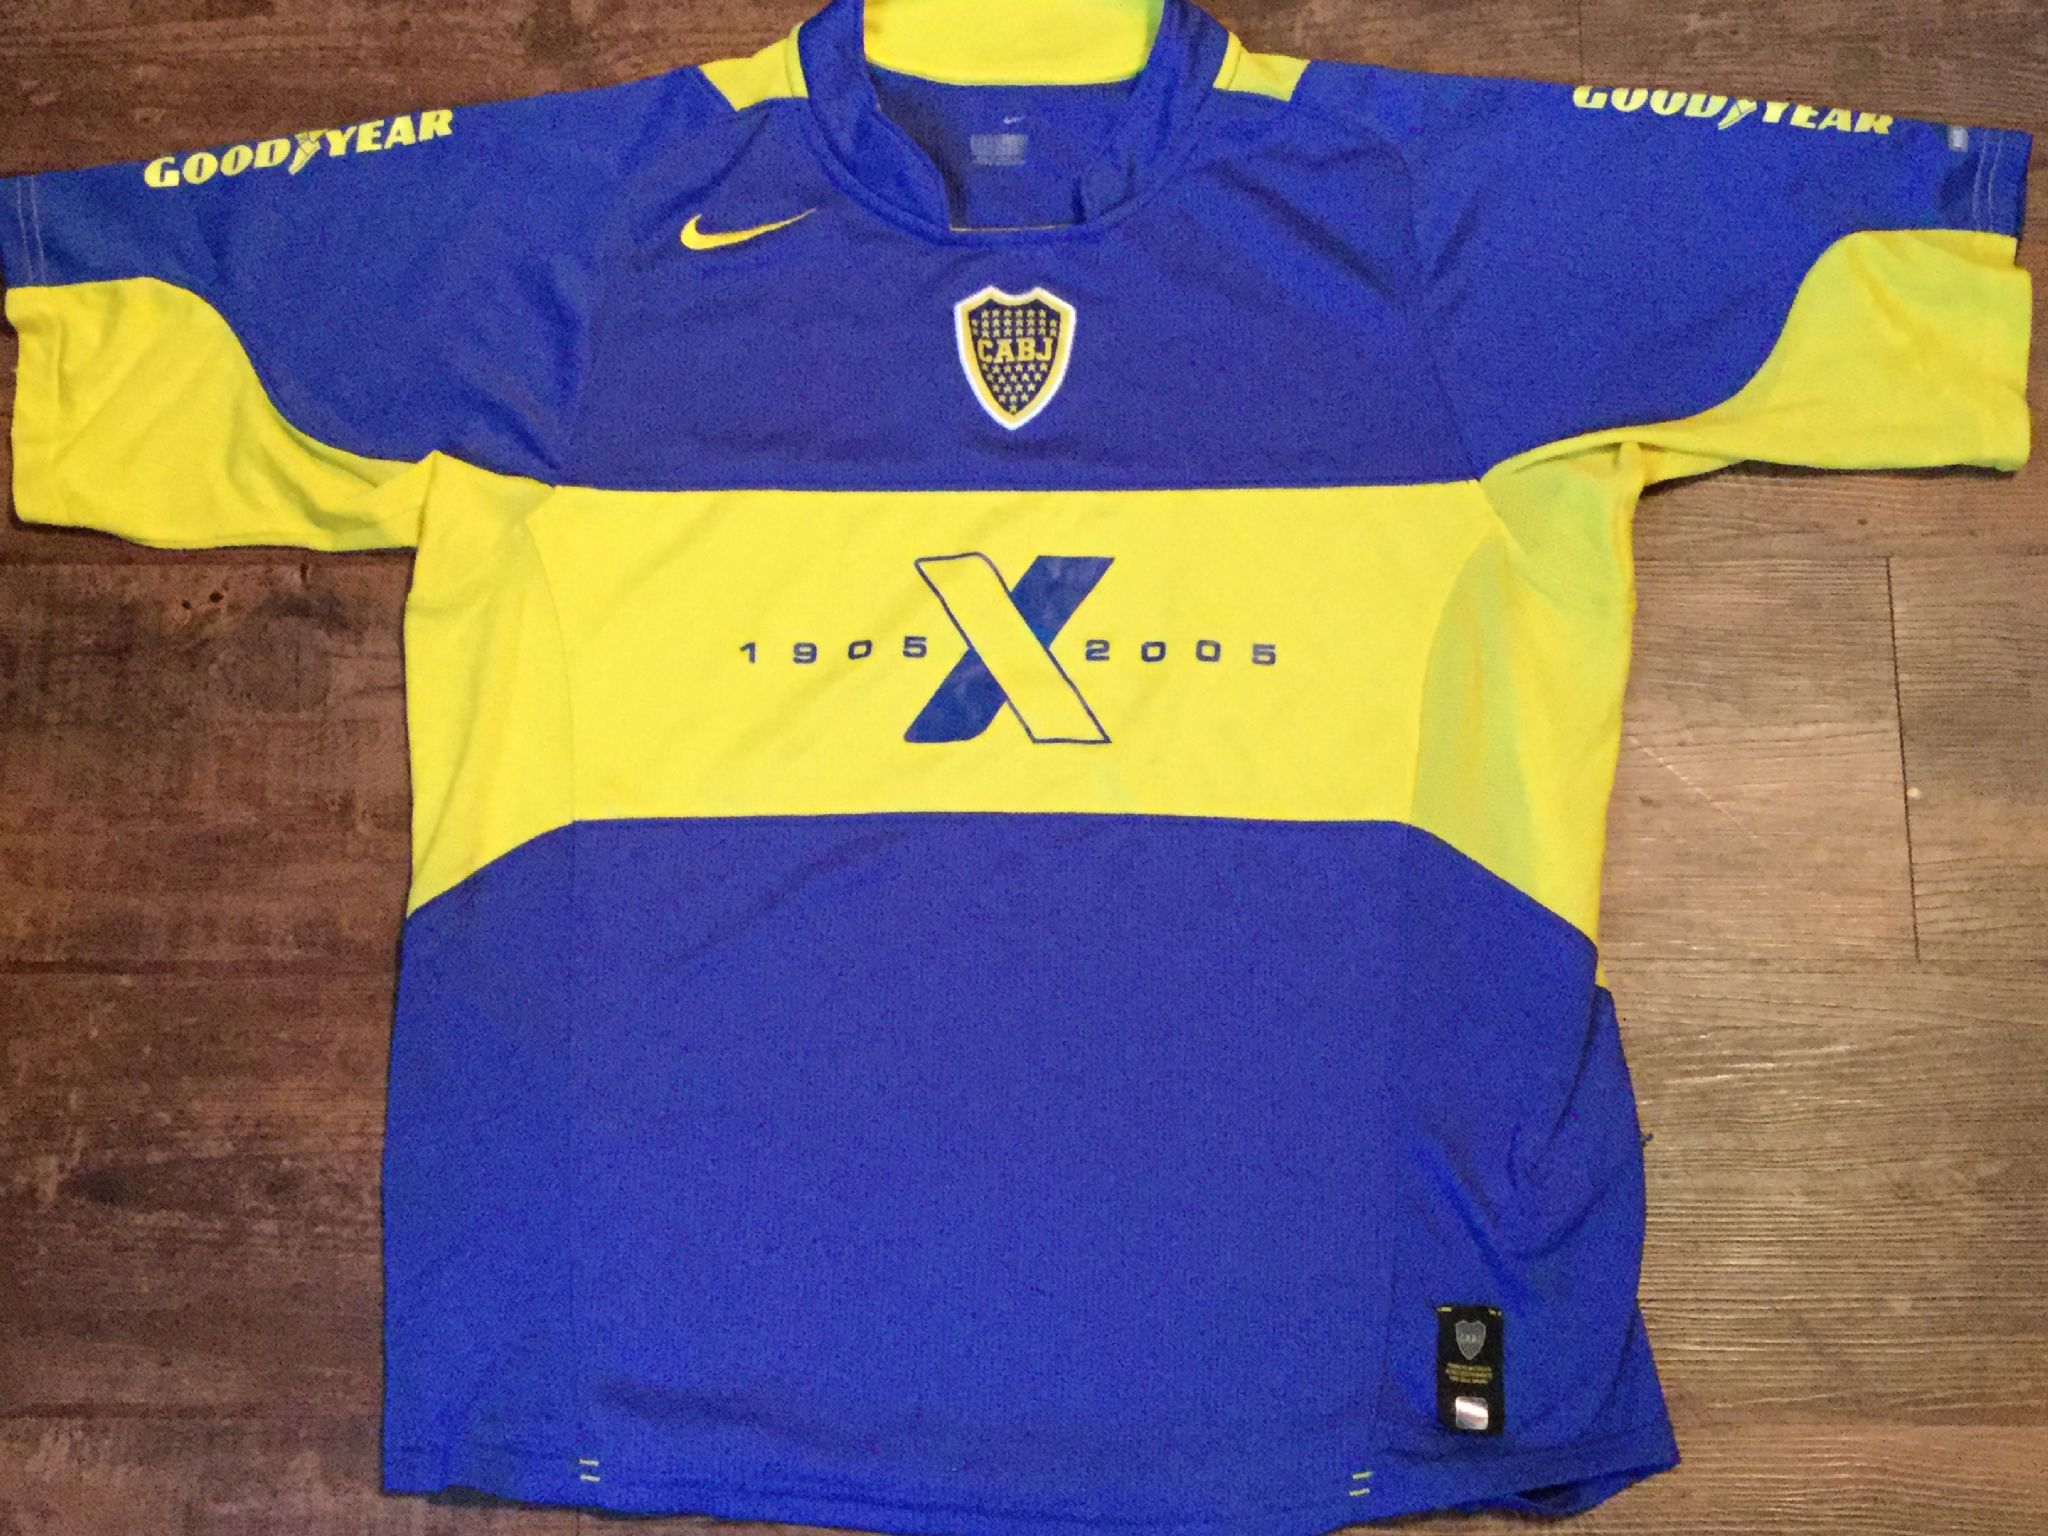 watch 81fd5 79b64 Global Classic Football Shirts | 2005 Boca Juniors Vintage ...